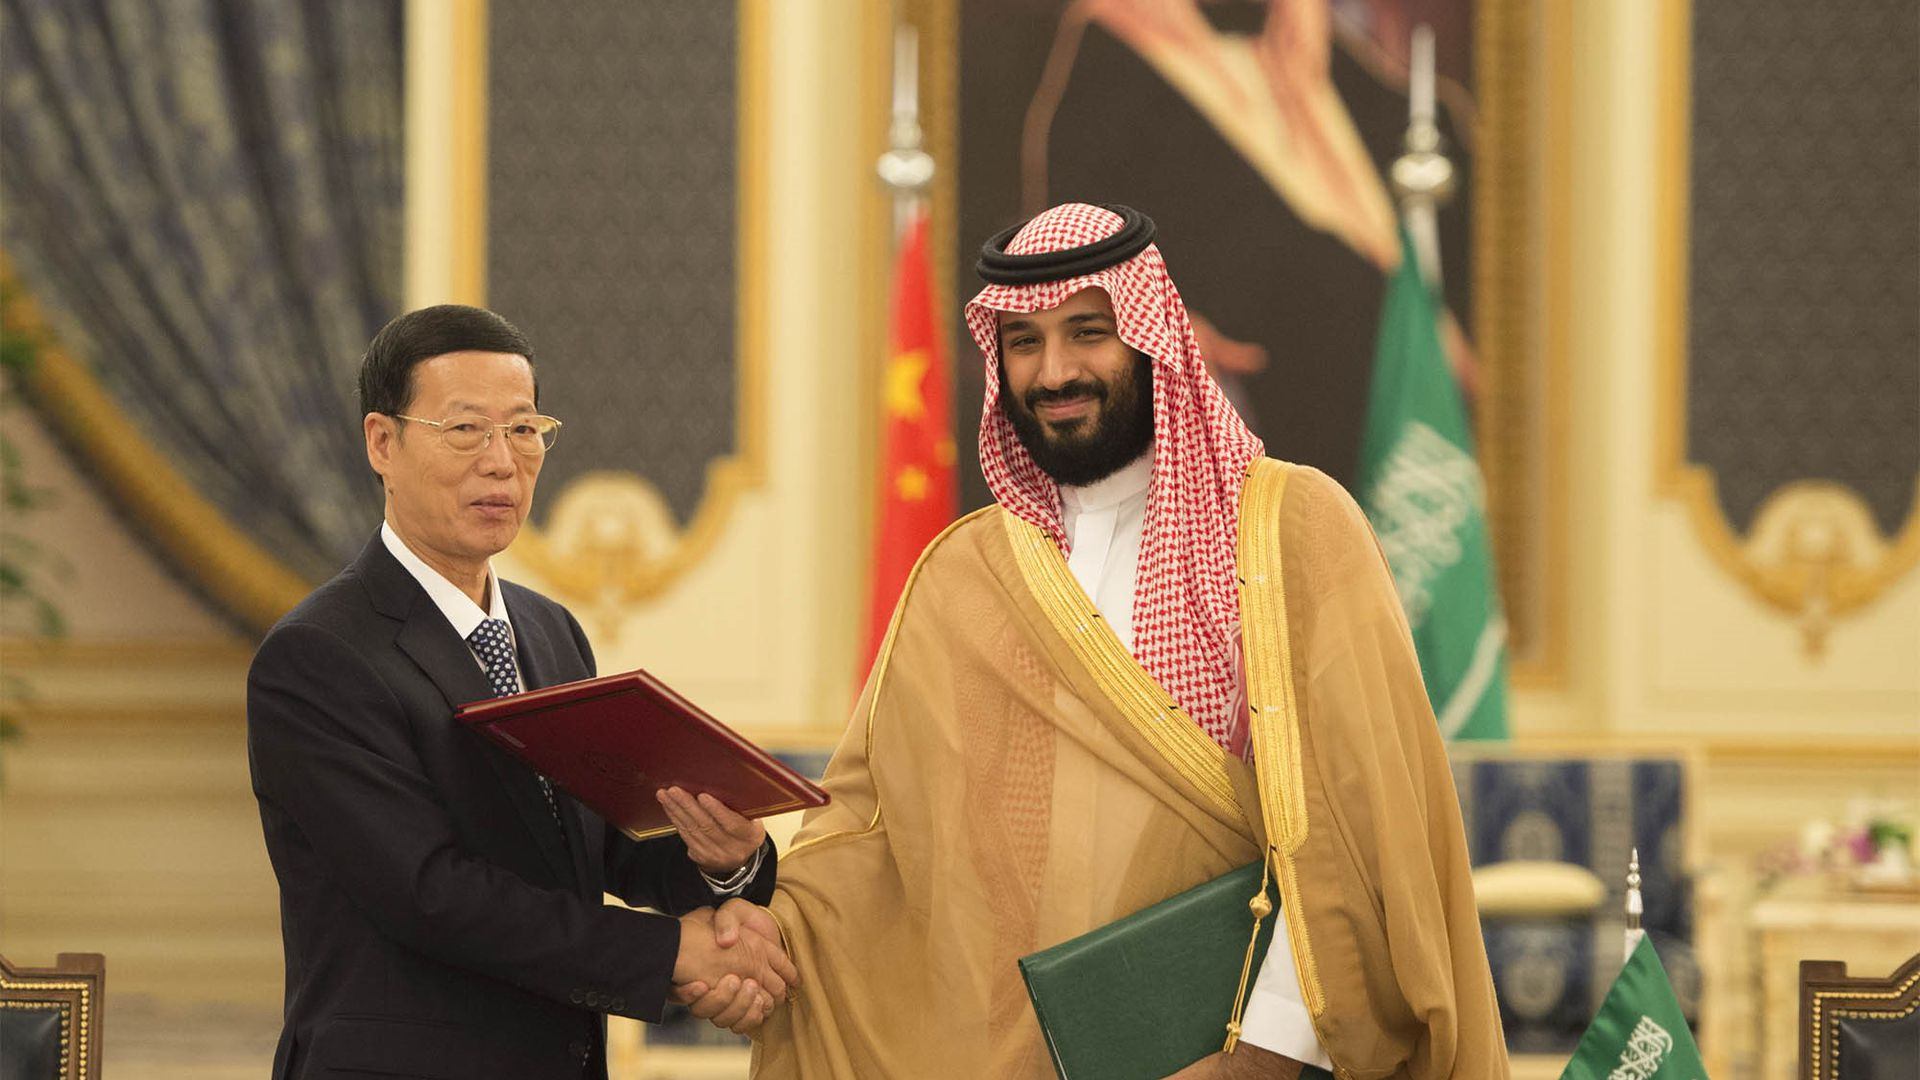 In this image, Saudi Crown Prince Mohammed bin Salman shakes hands with a Chinese diplomat in front of the Chinese and Saudi Arabian flags.